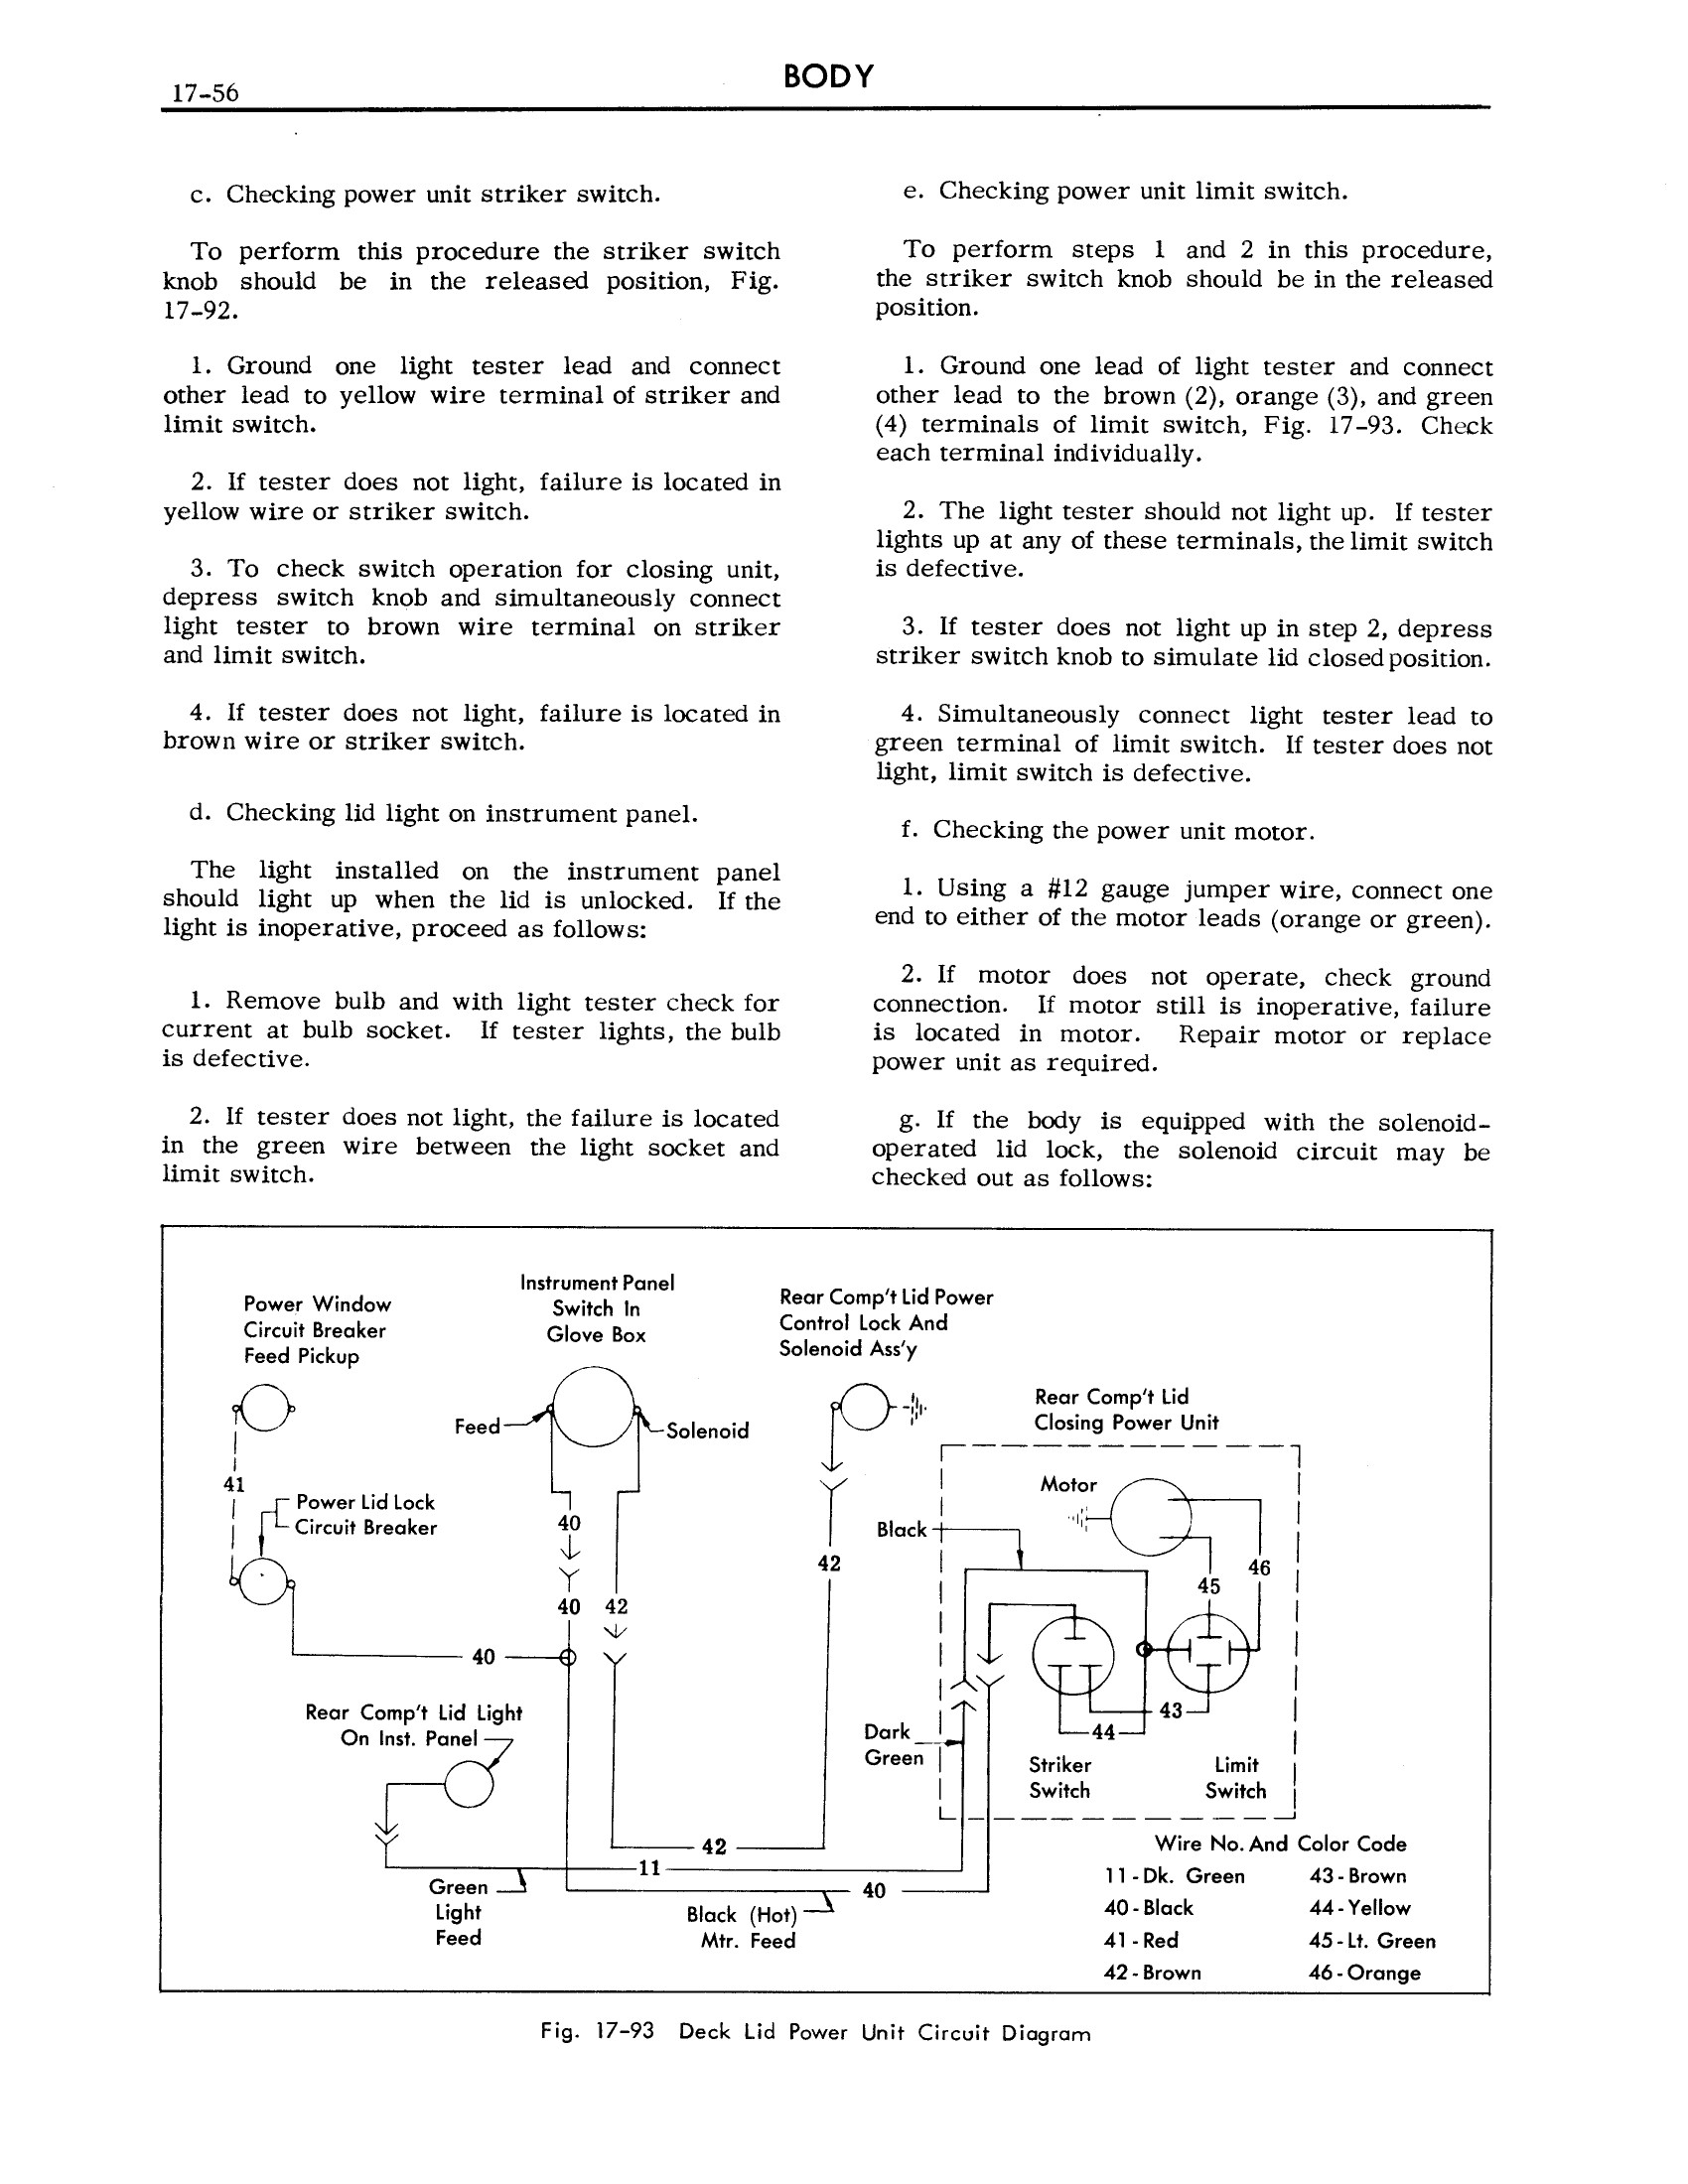 1957 Cadillac Shop Manual- Body Page 56 of 76